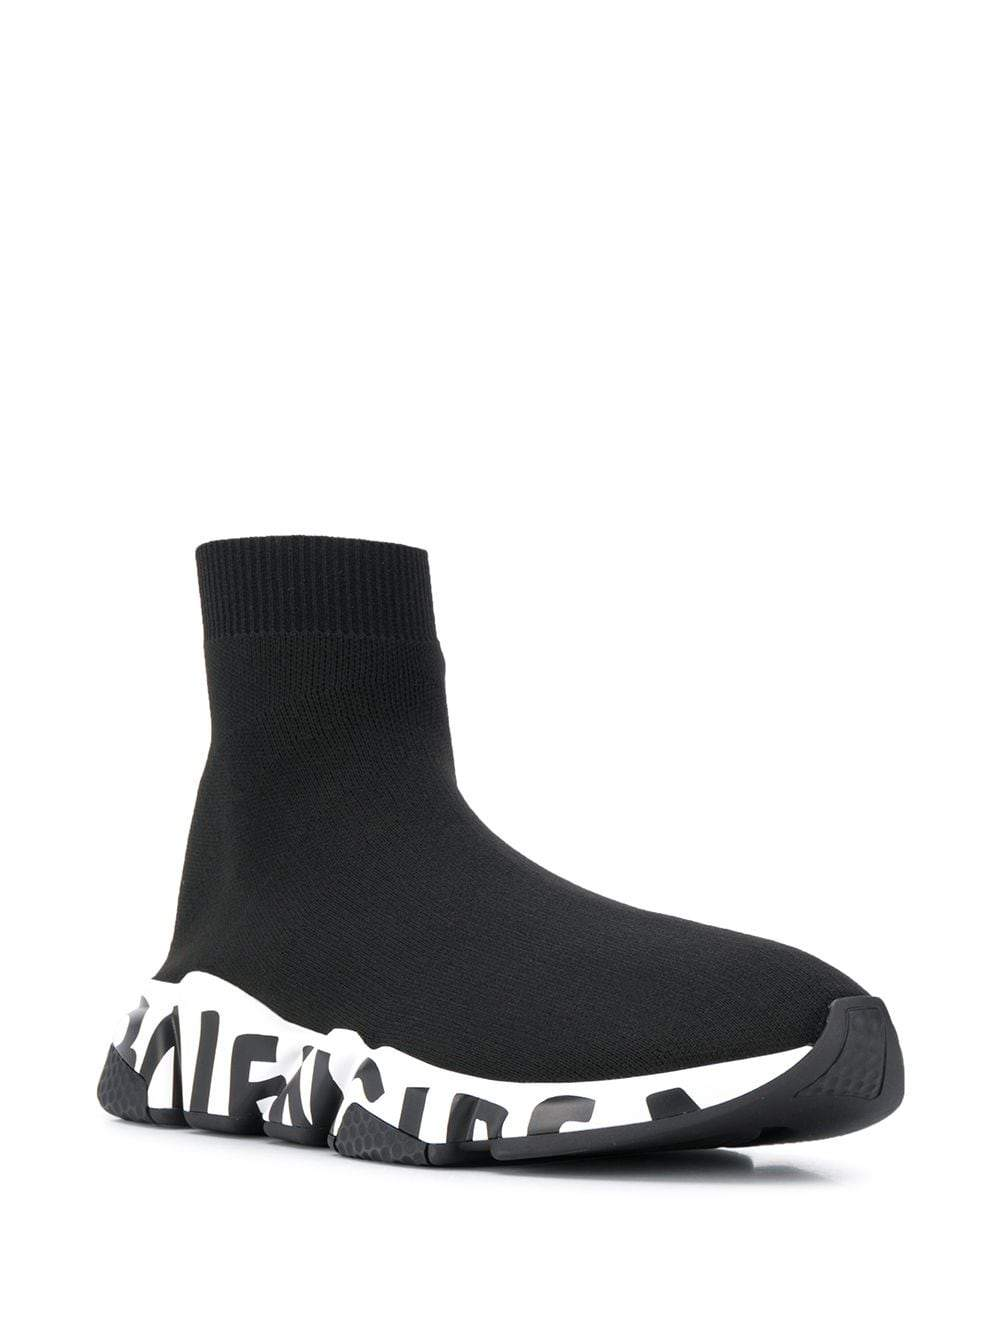 BALENCIAGA Speed Runner Black/White Graffiti